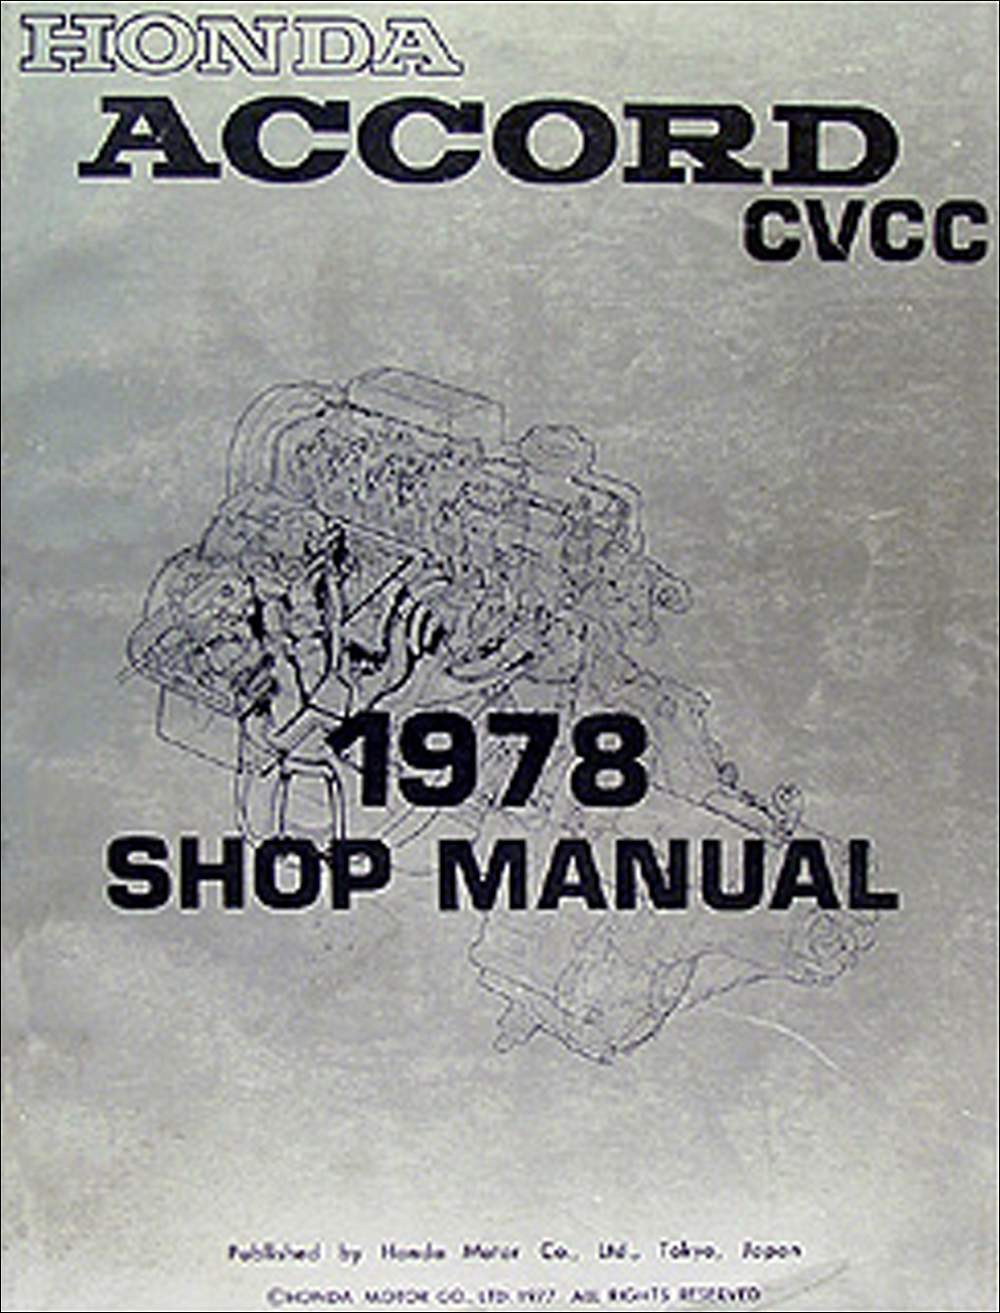 1978 Honda Accord CVCC Repair Manual Original